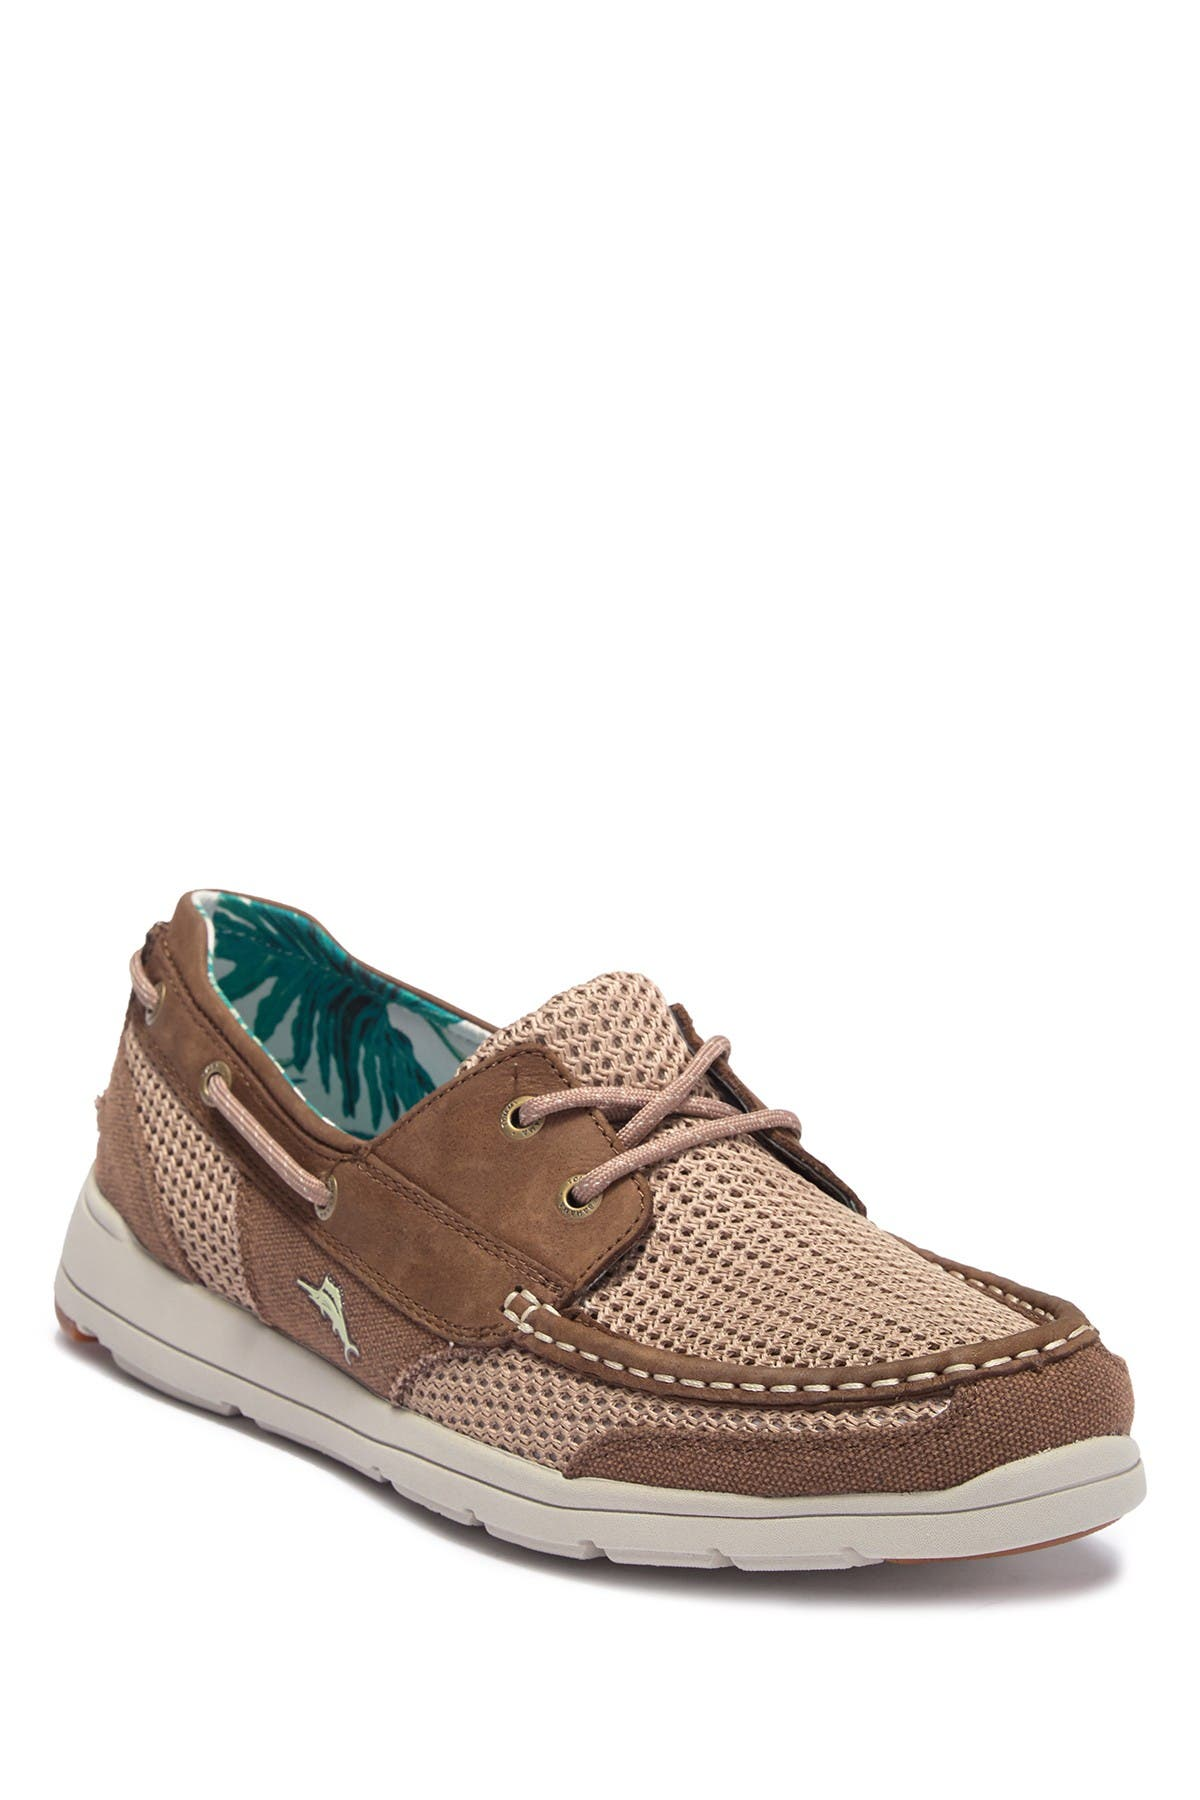 Image of Tommy Bahama Mesh Contrast Boat Shoe